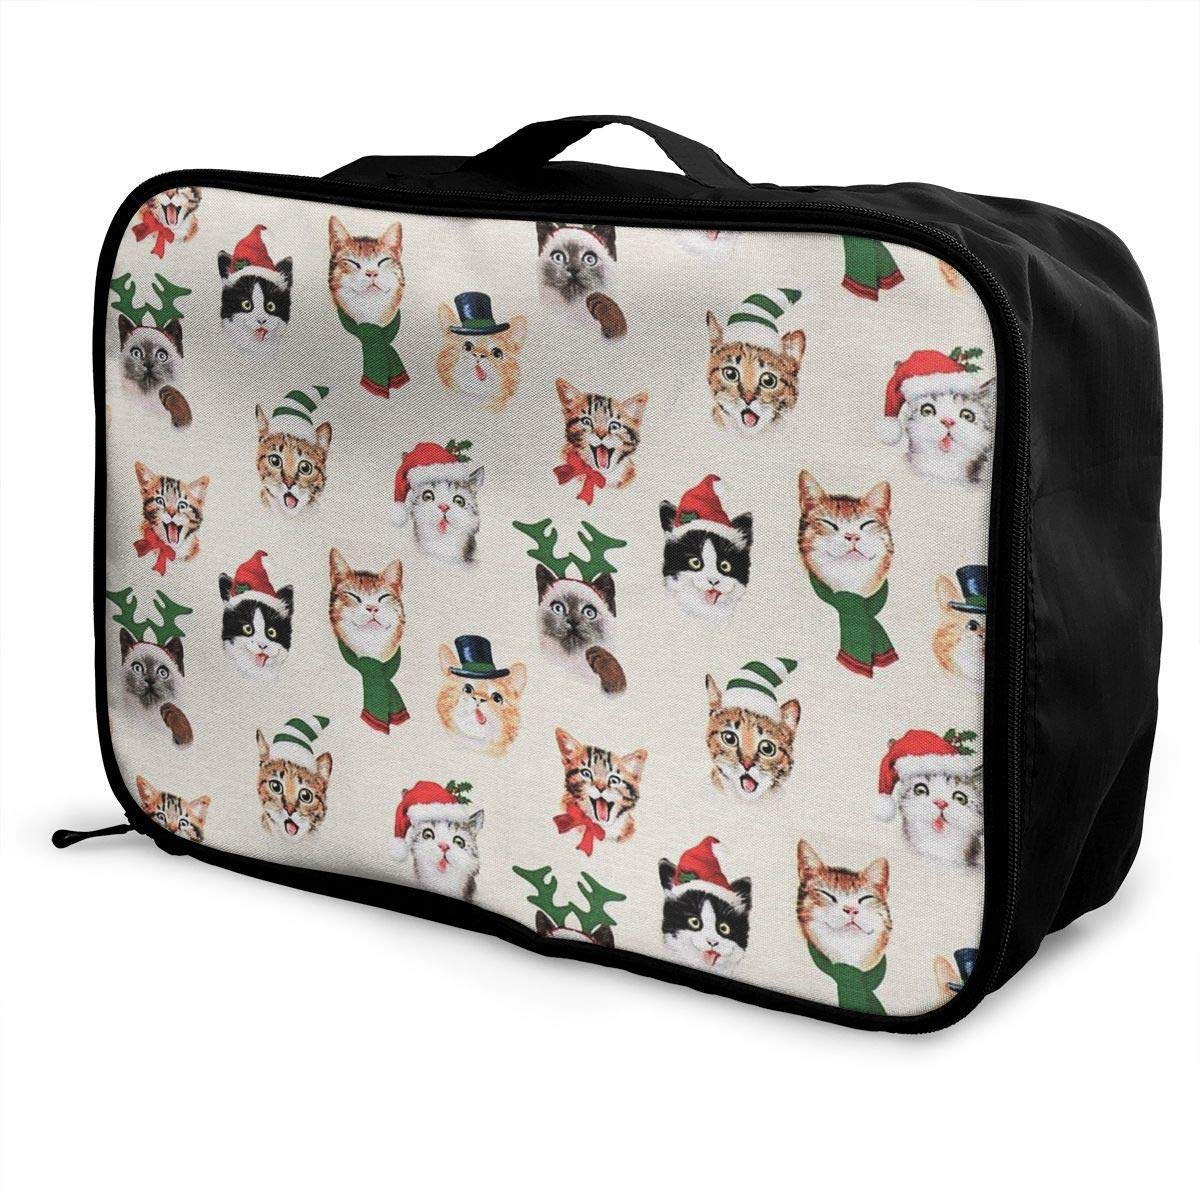 Portable Luggage Duffel Bag Christmas Cat Travel Bags Carry-on in Trolley Handle JTRVW Luggage Bags for Travel